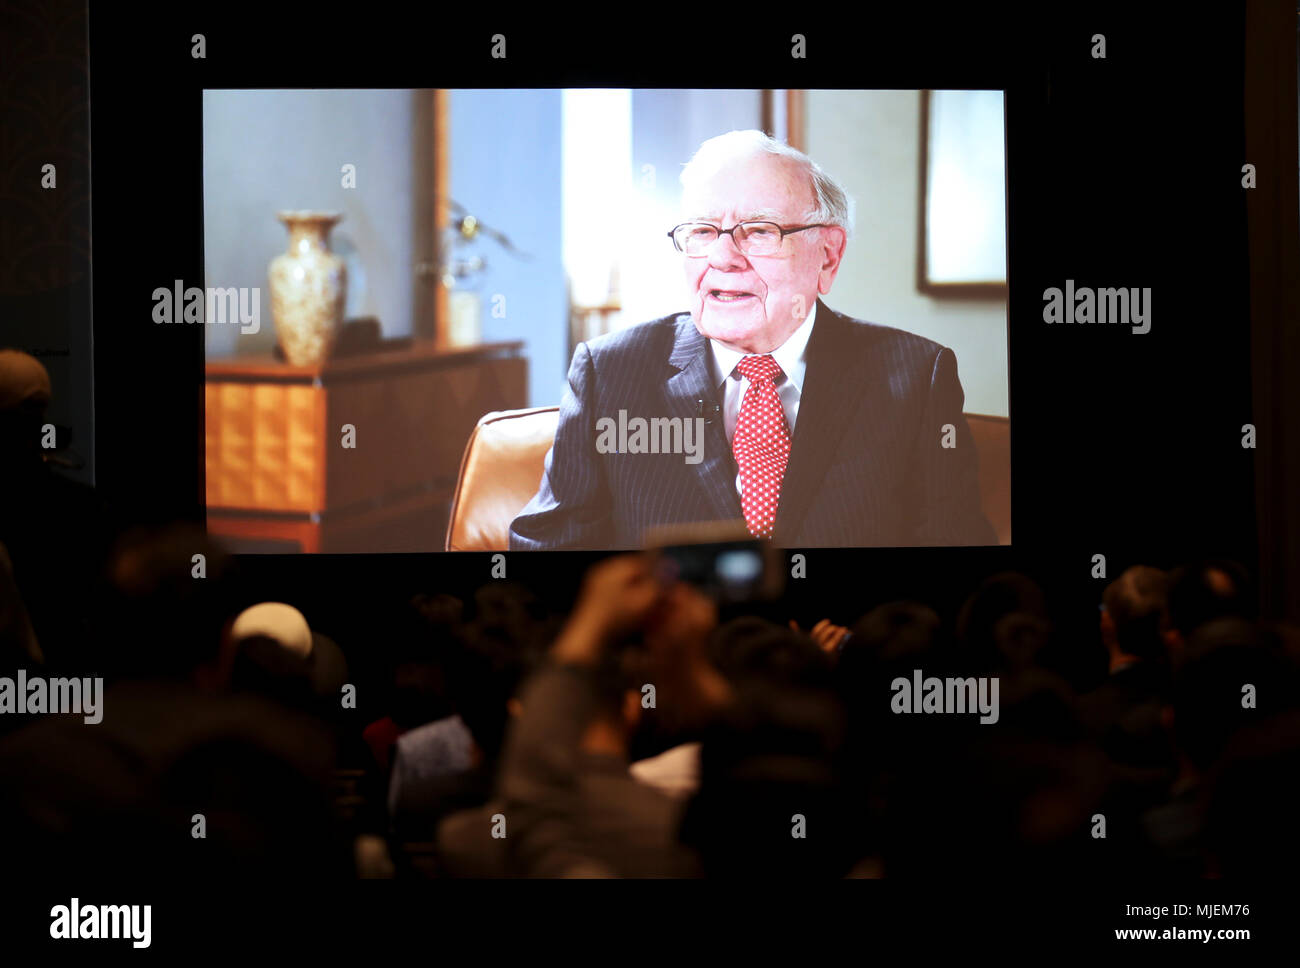 Omaha. 4th May, 2018. Participants watch a video of an interview of U.S. billionaire investor Warren Buffett in Omaha, the United States, May 4, 2018, one day prior to the Berkshire Hathaway's annual shareholders meeting. Credit: Wang Ying/Xinhua/Alamy Live News - Stock Image